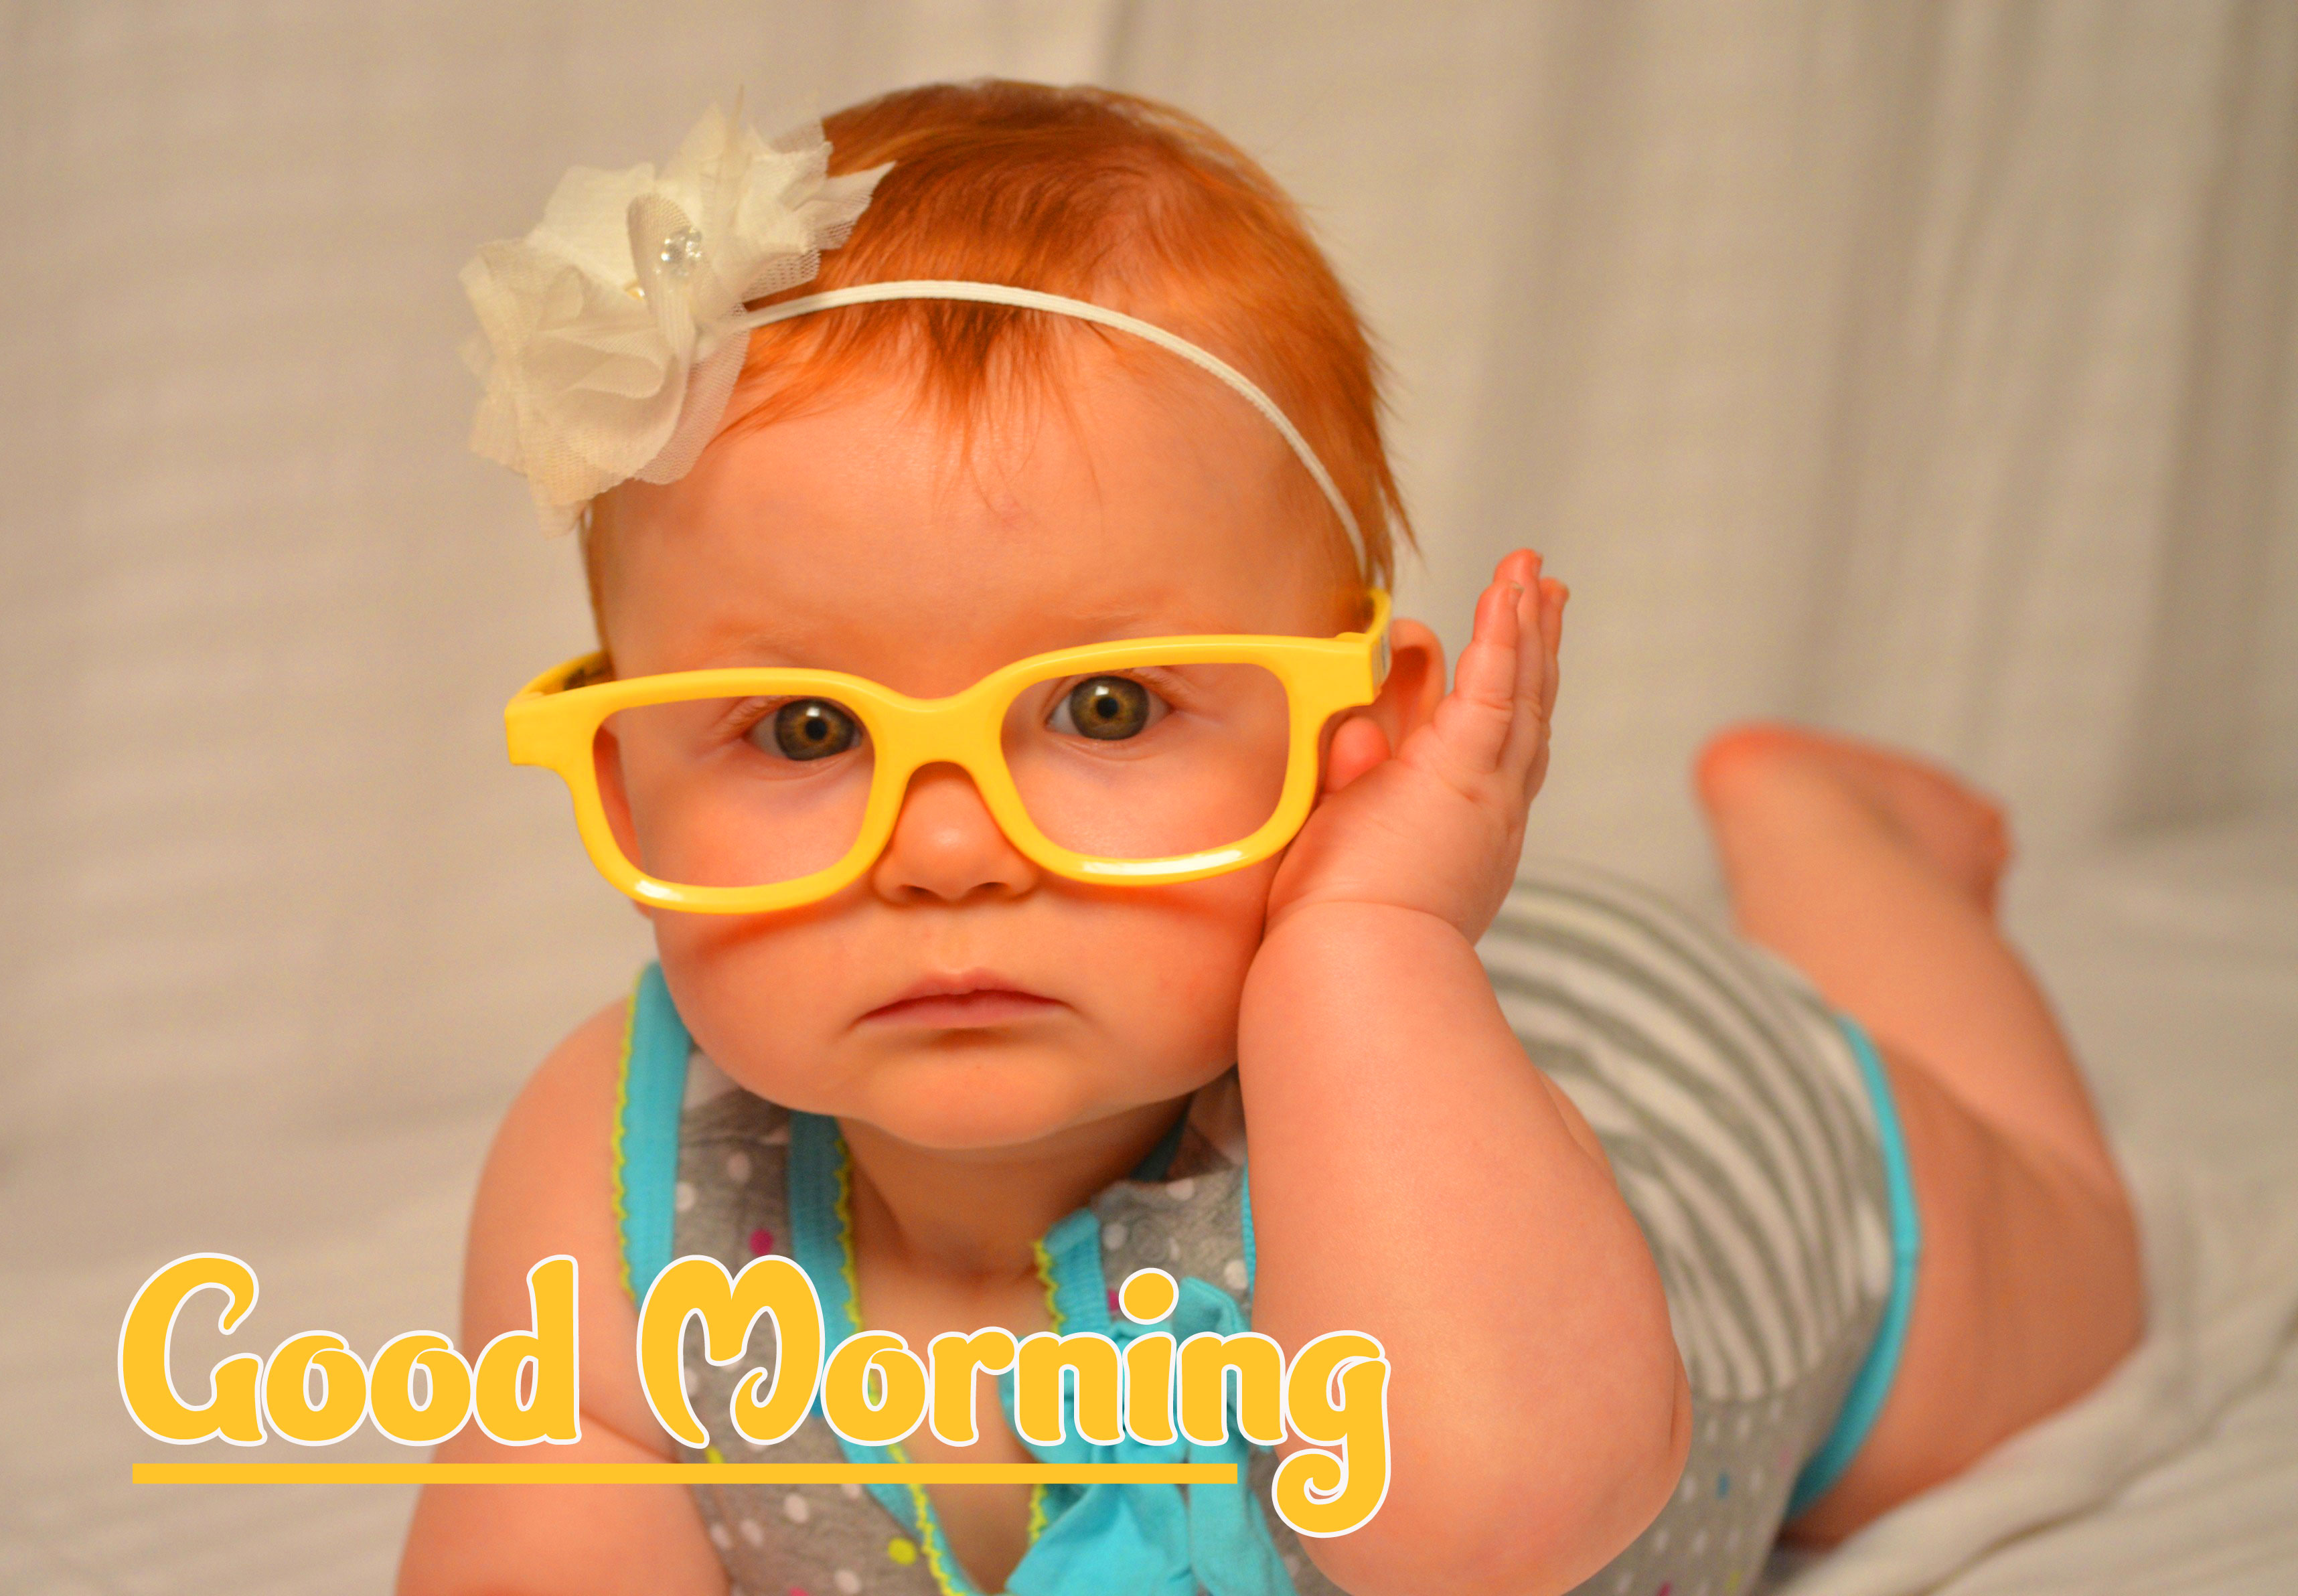 Funny Good Morning Wishes Pics Wallpaper Free Download